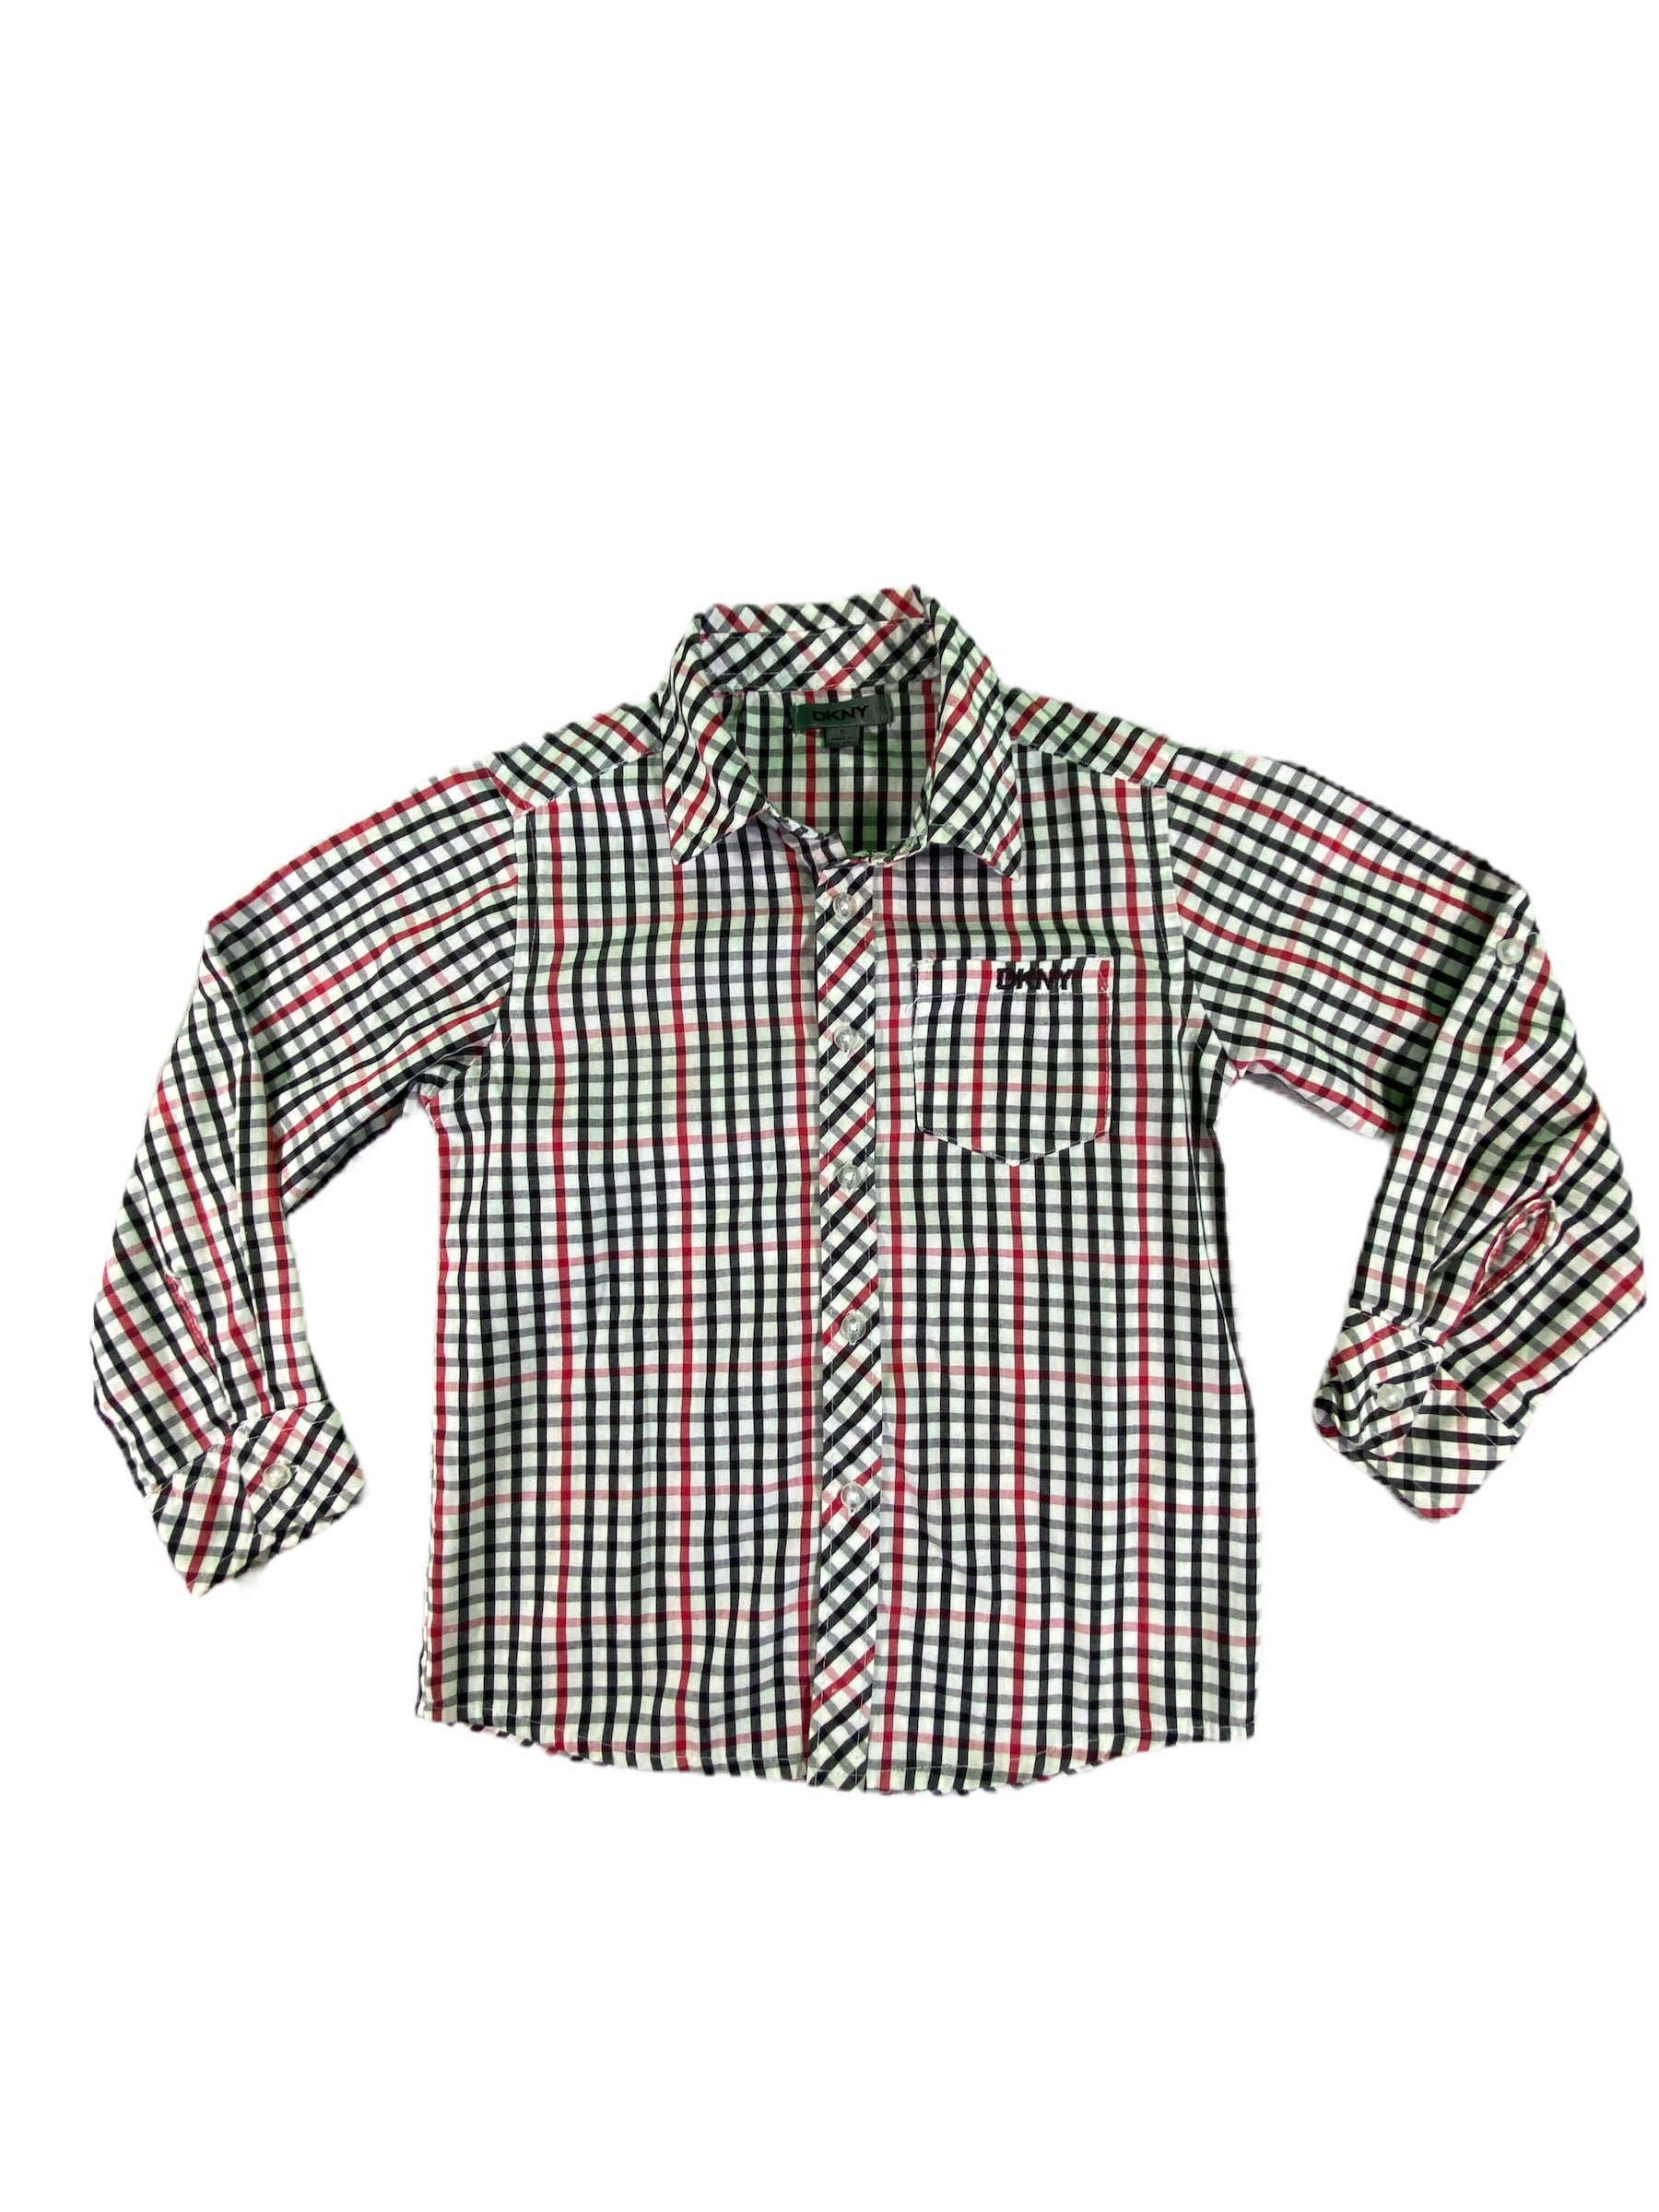 DKNY Plaid Button-Down (5 Boys)